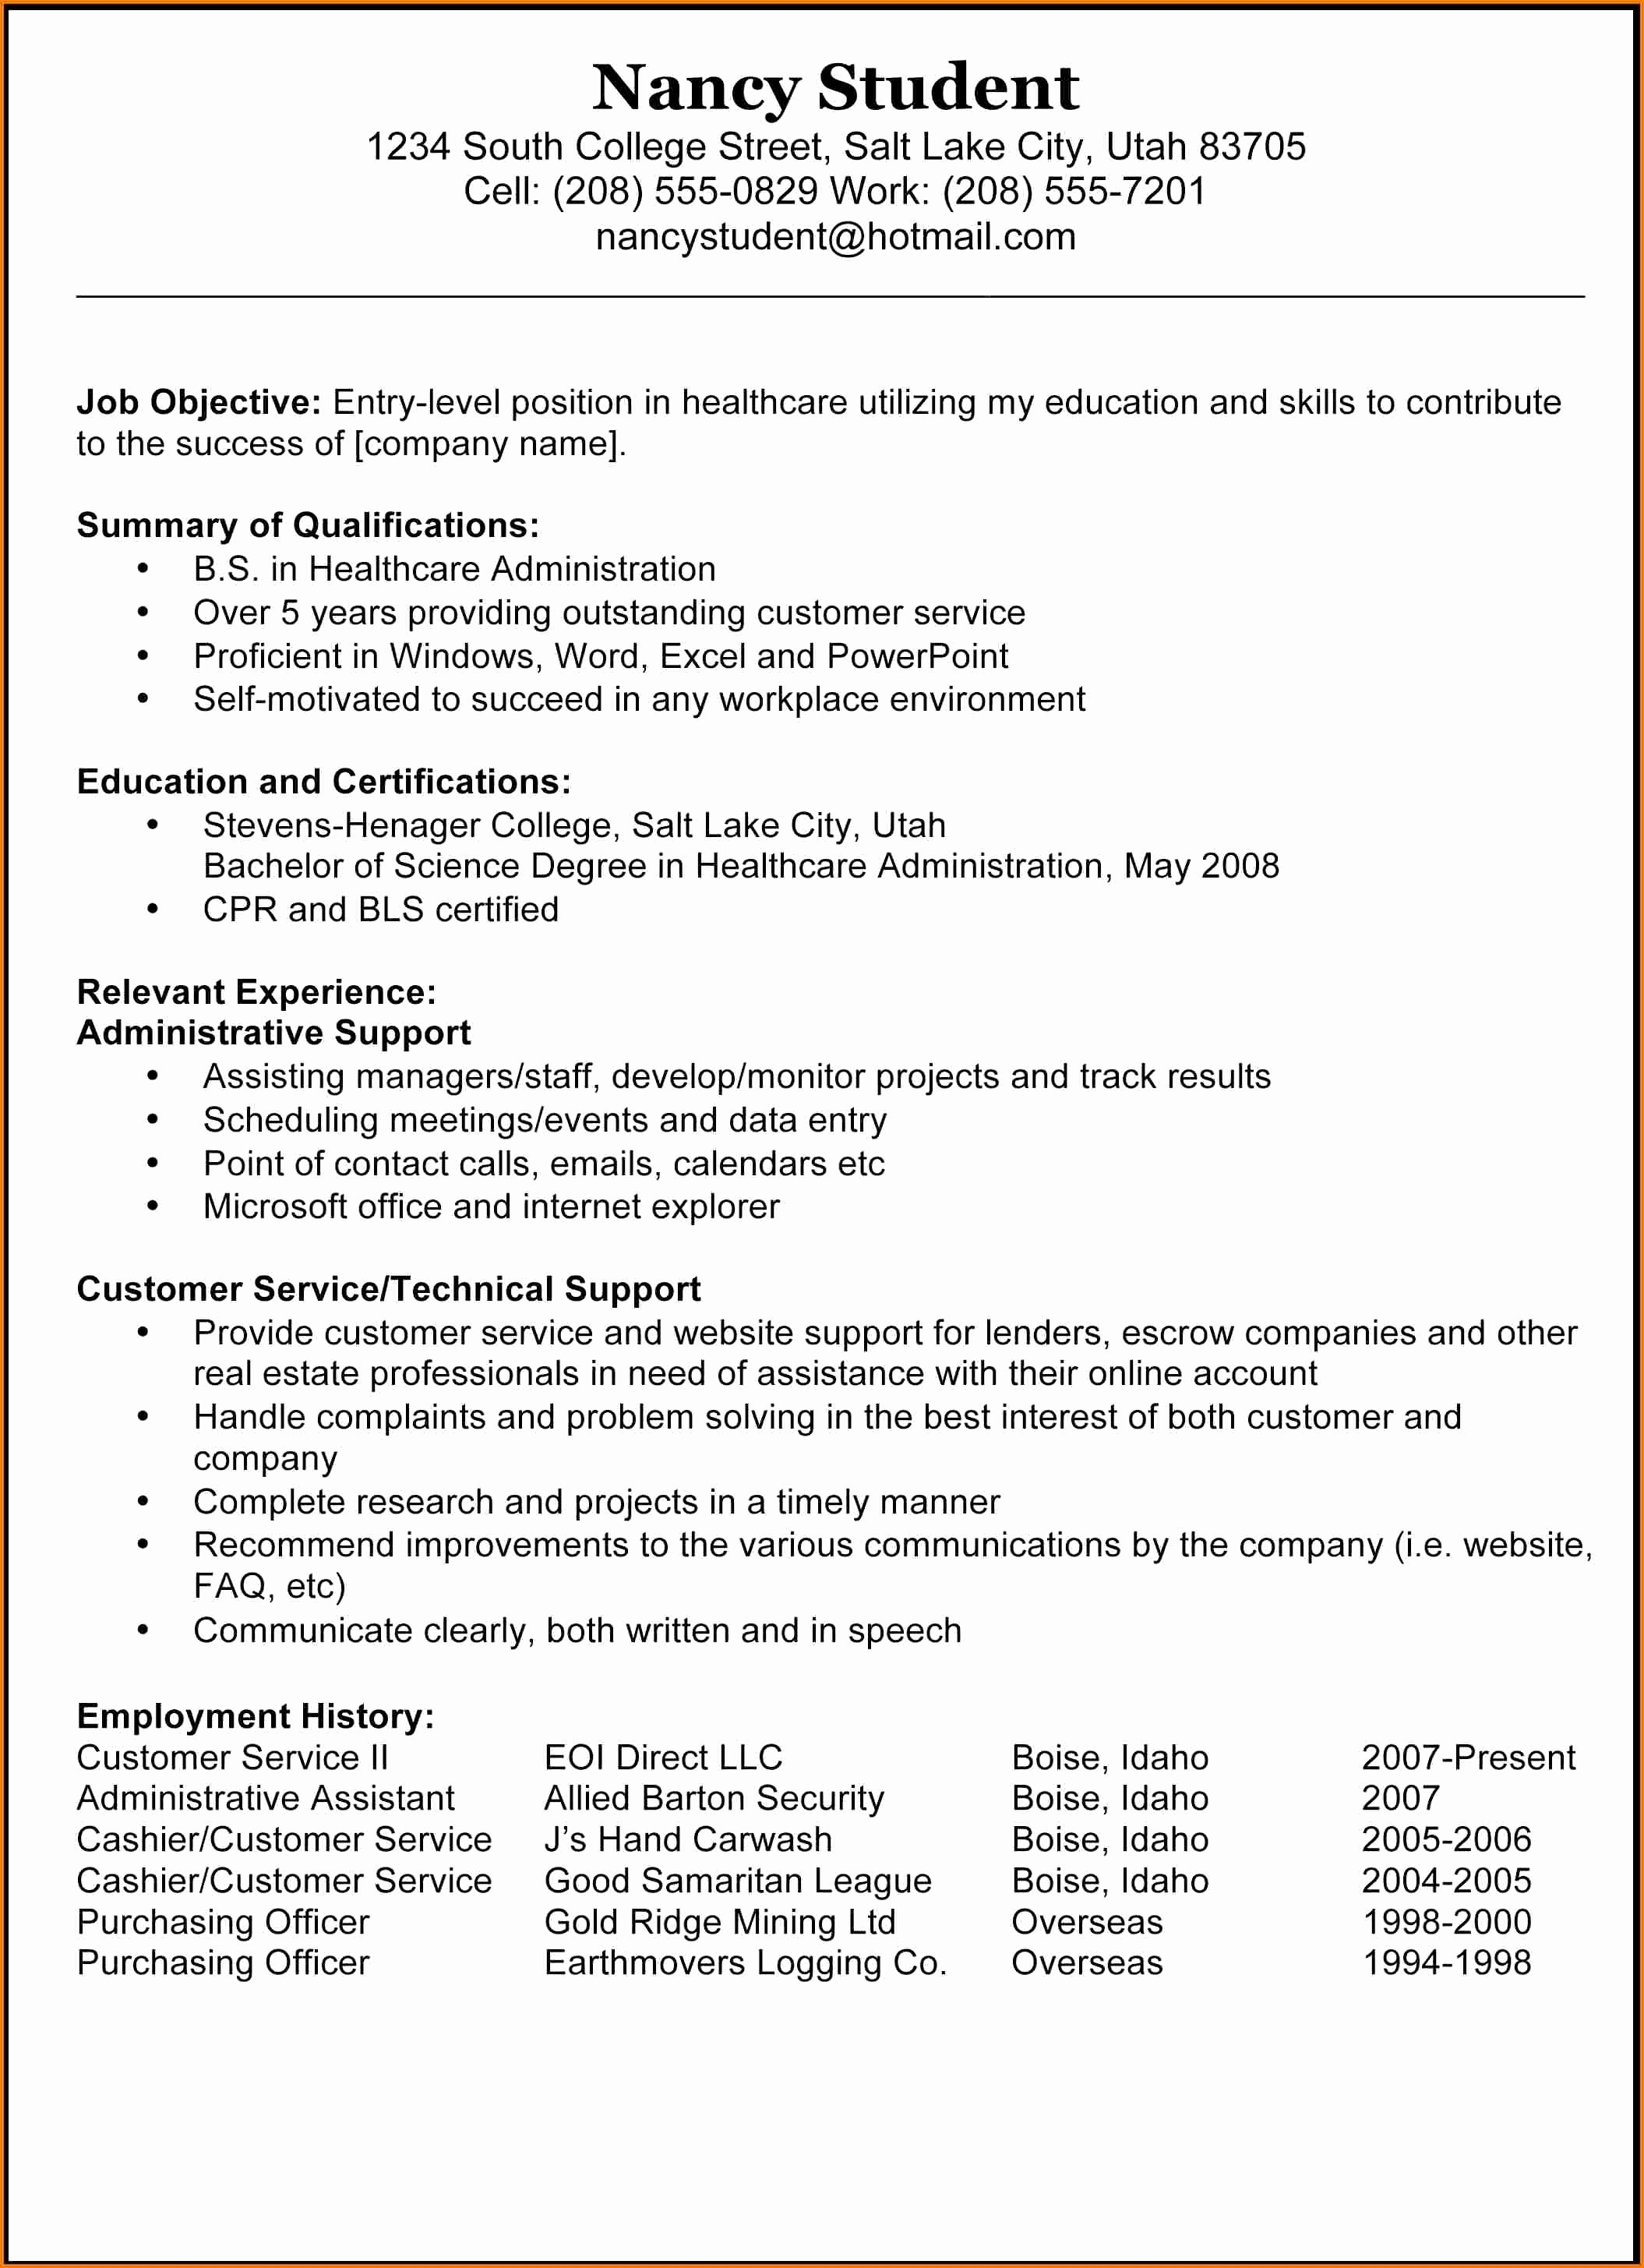 Download Free Professional Resume Templates Best Of Free Resume Templates Professional Template Doc Samples